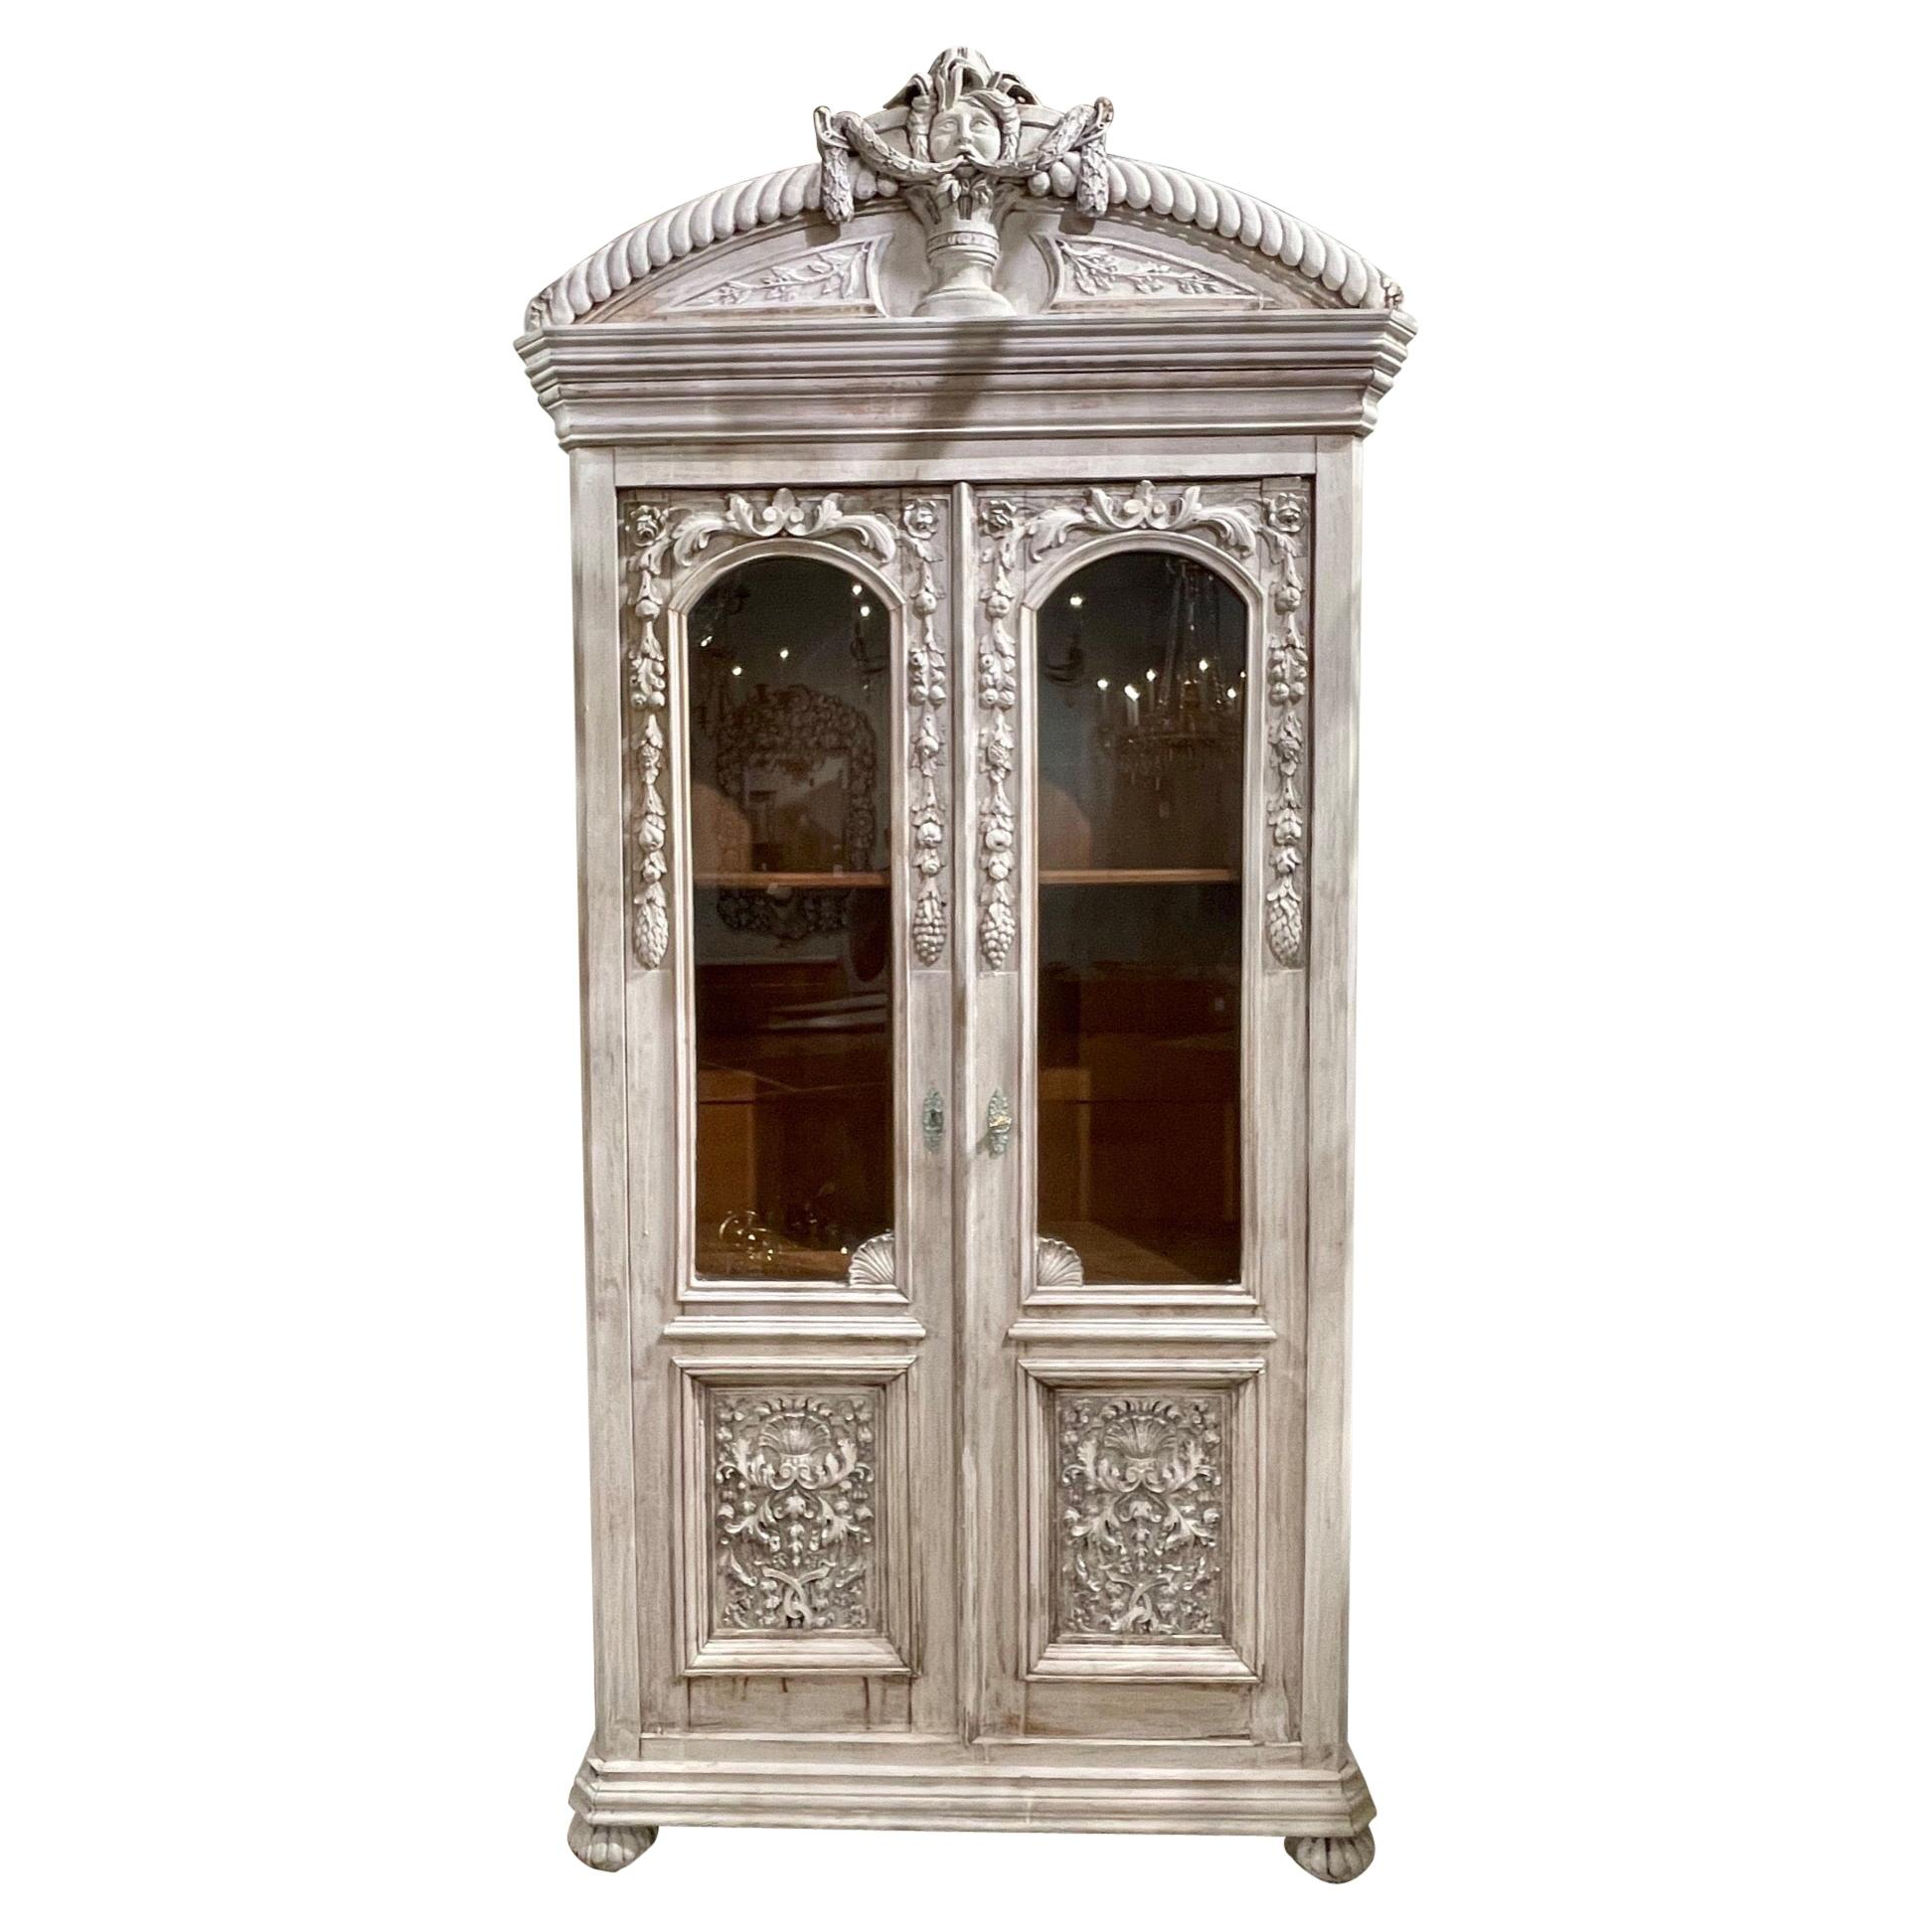 19th Century French Carved and White Washed Oak Cabinet